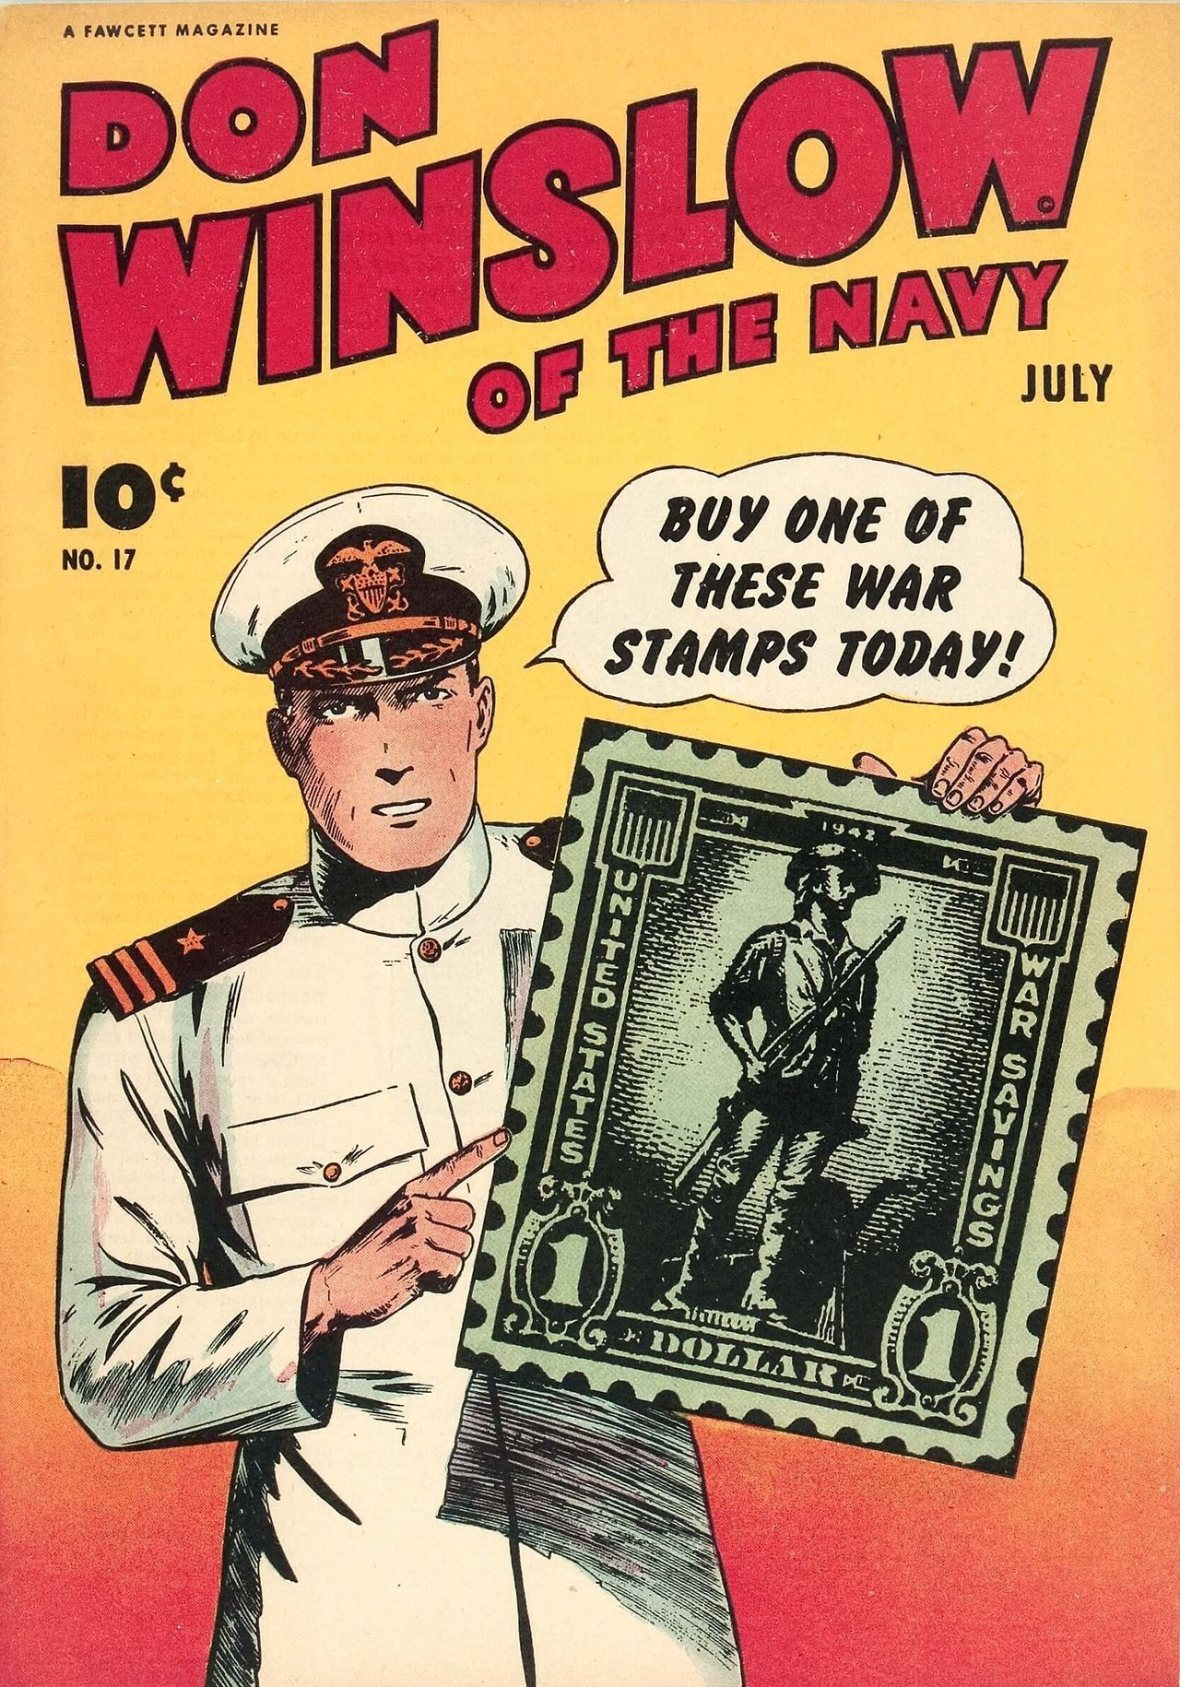 Don Winslow of the Navy - issue No. 17 - Fawcett Publications - 1944